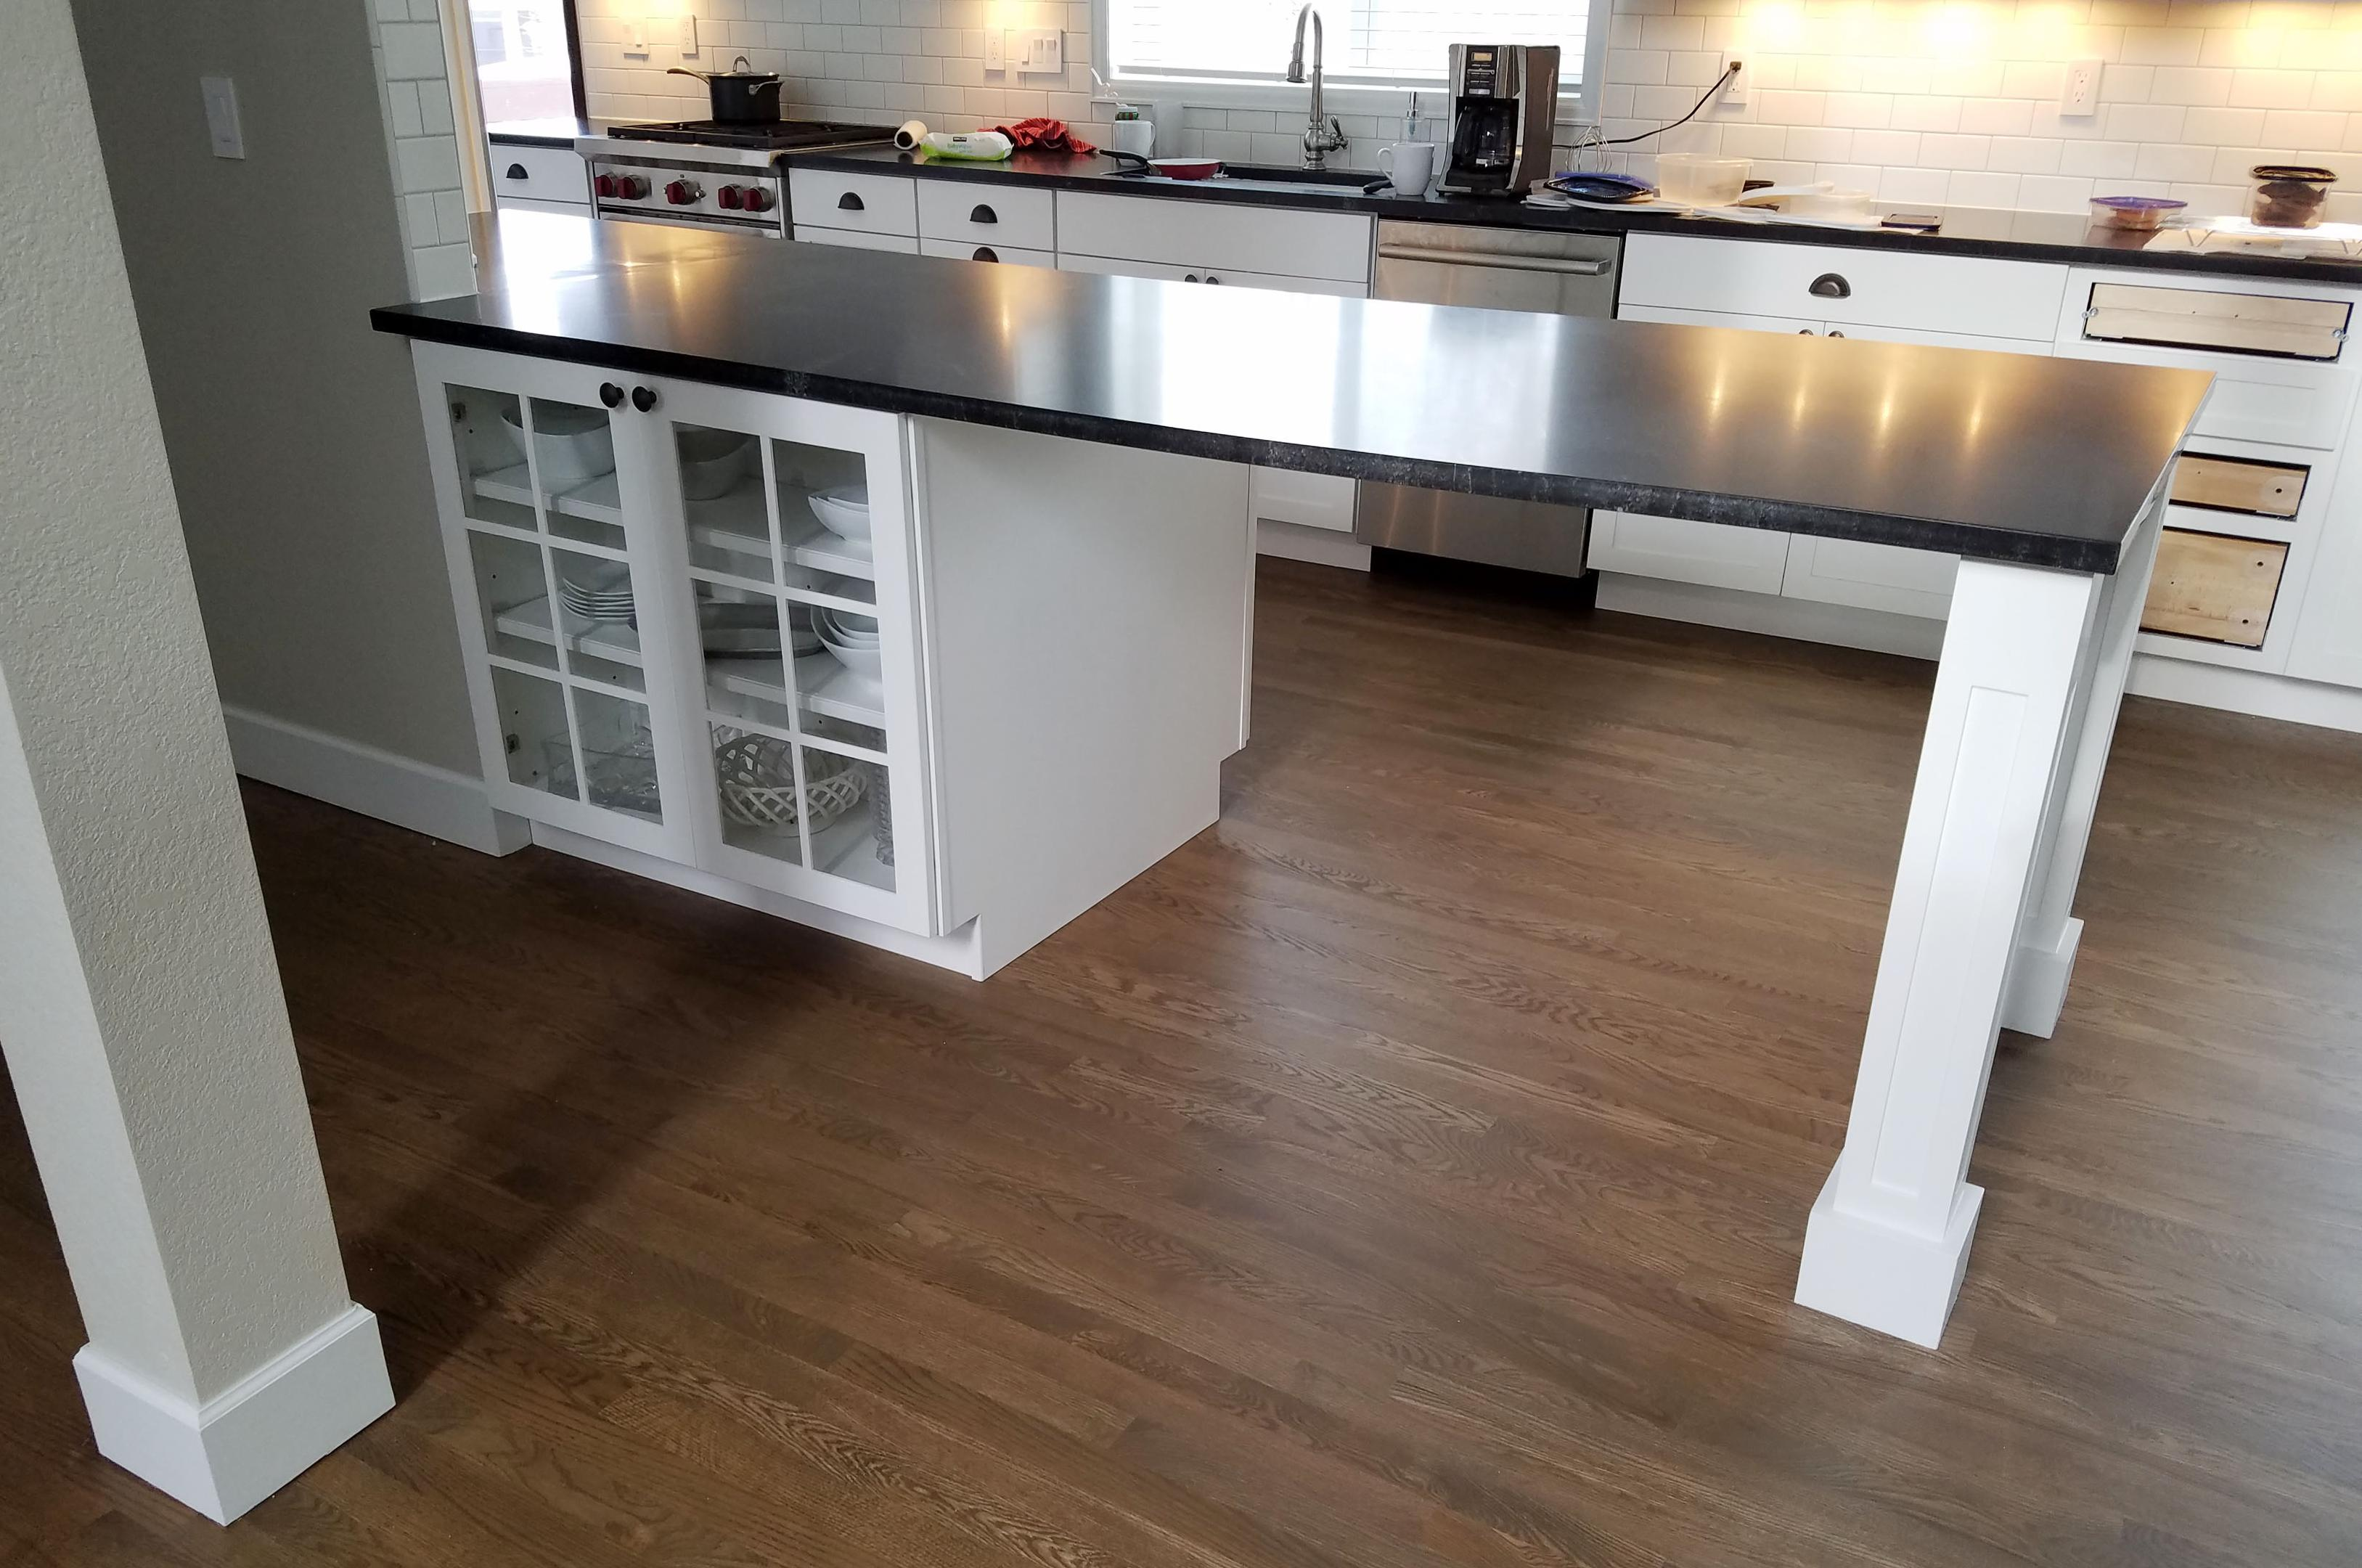 Floating Countertop Supports Granite Countertop Span Needs Support The Spokesman Review